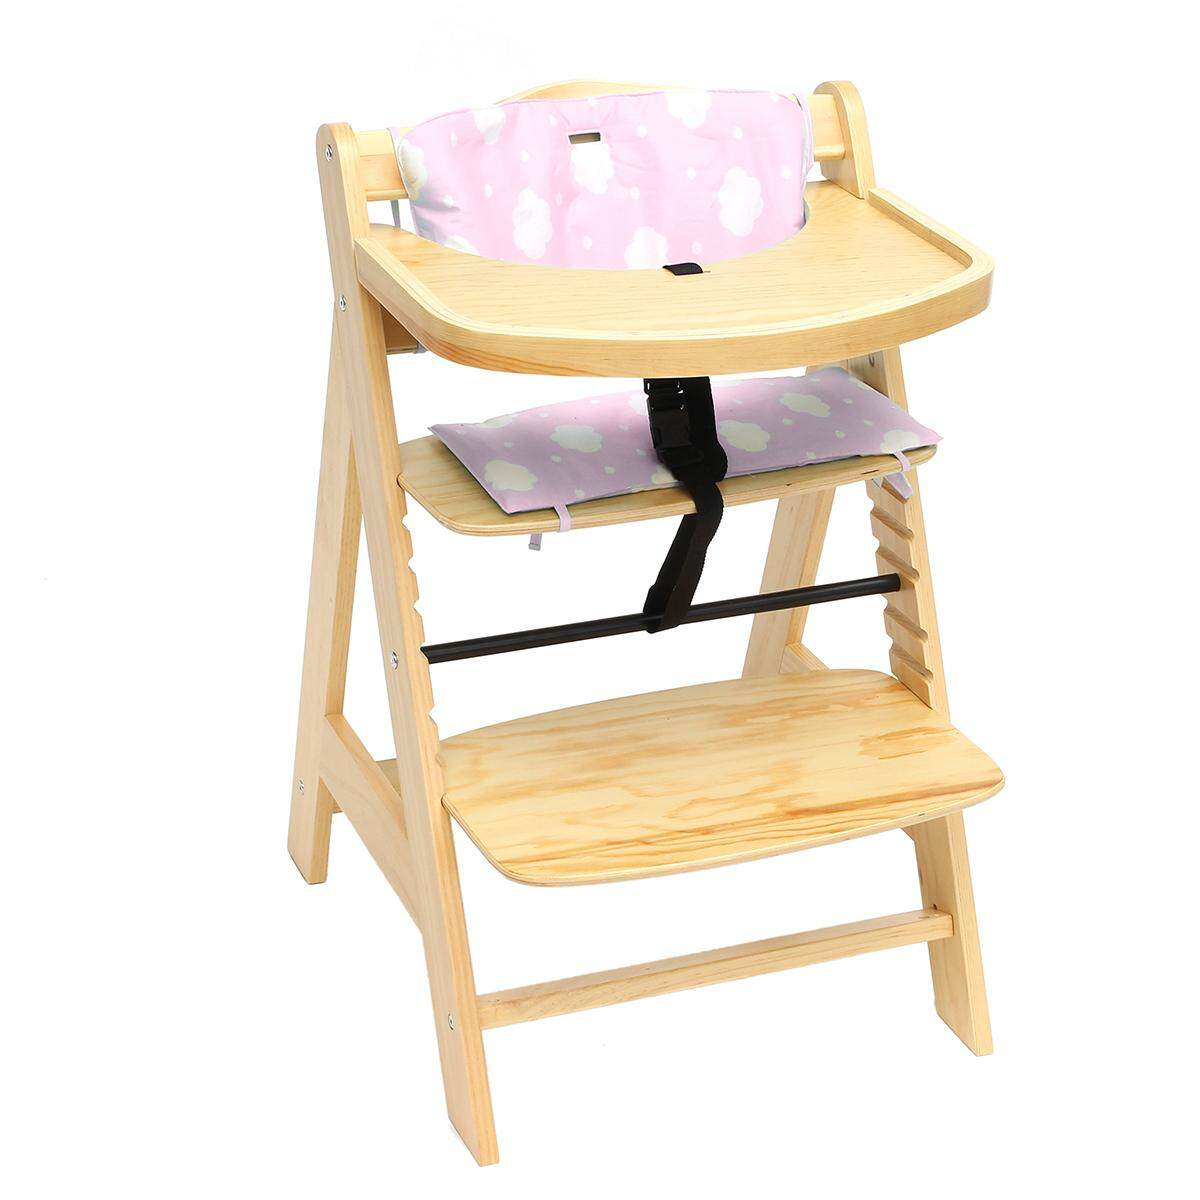 Baby High Chair 3 in 1 Wooden Highchair with Tray and Bar (BEECH) Pink - intl